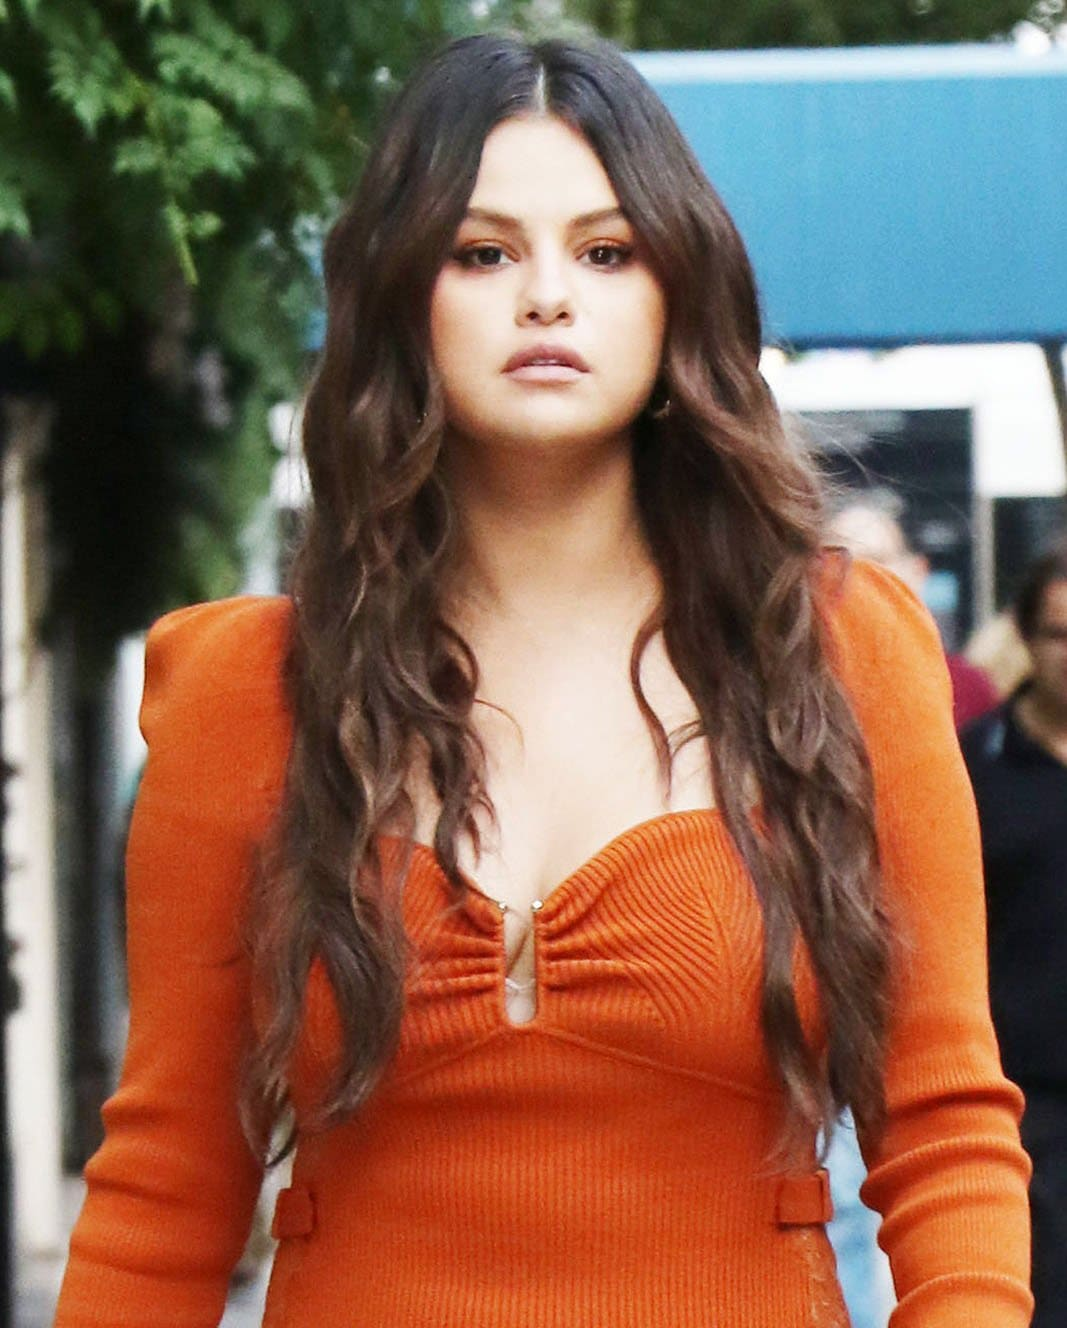 Selena Gomez looks fresh with minimal makeup and wears her long brunette tresses in soft waves